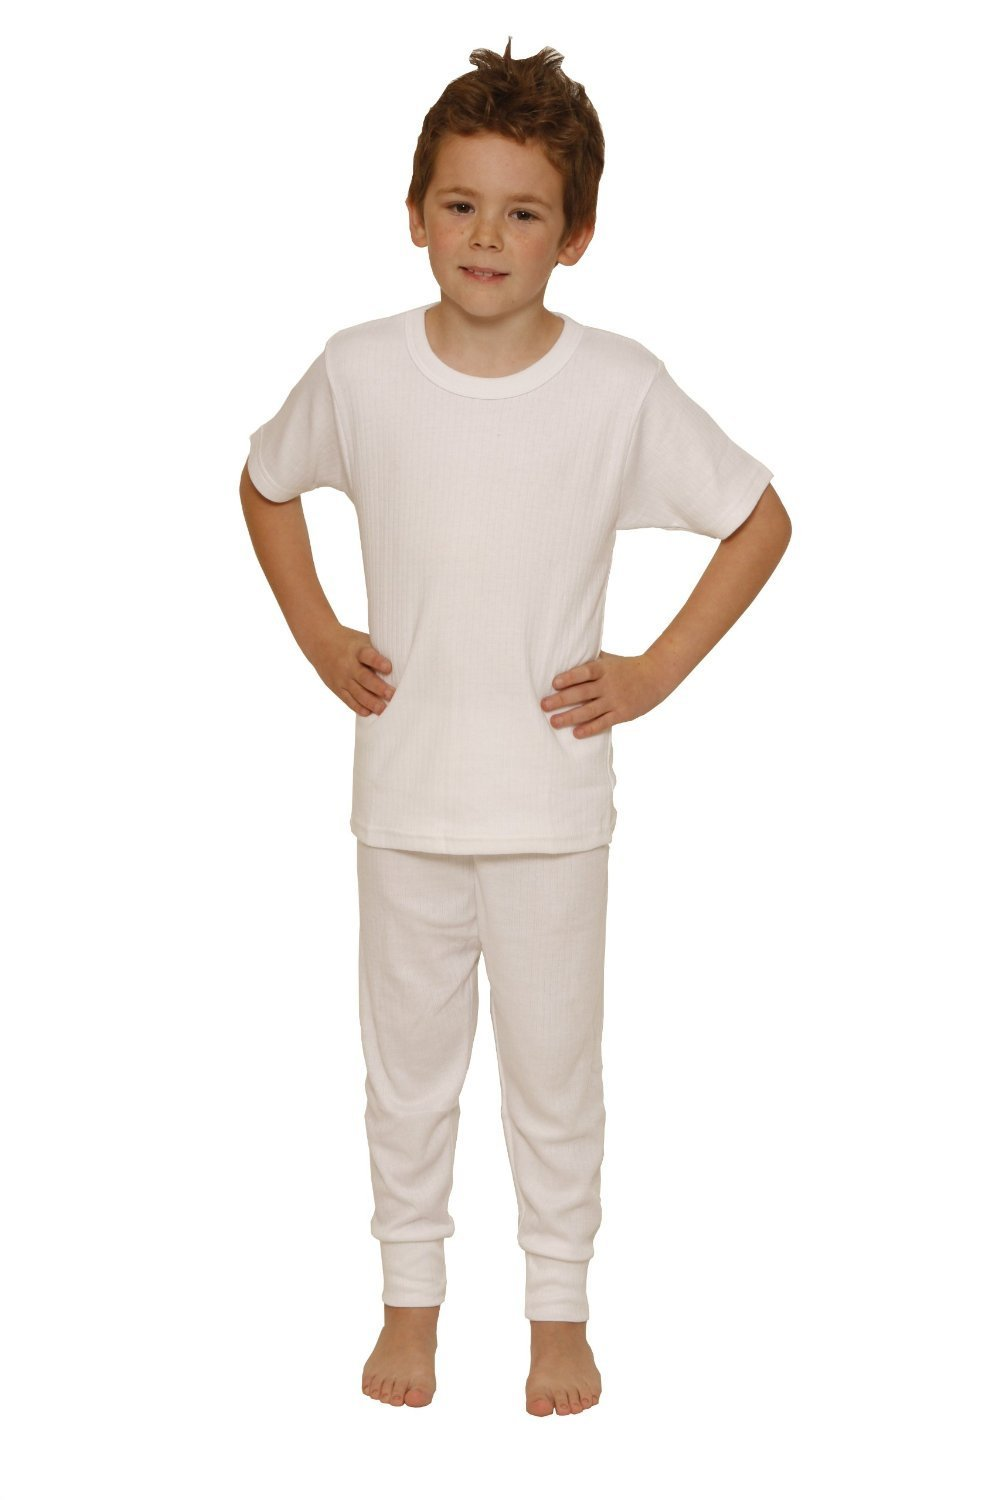 OCTAVE® Boys Thermal Underwear Set : Short Sleeve Vest and Long Pants